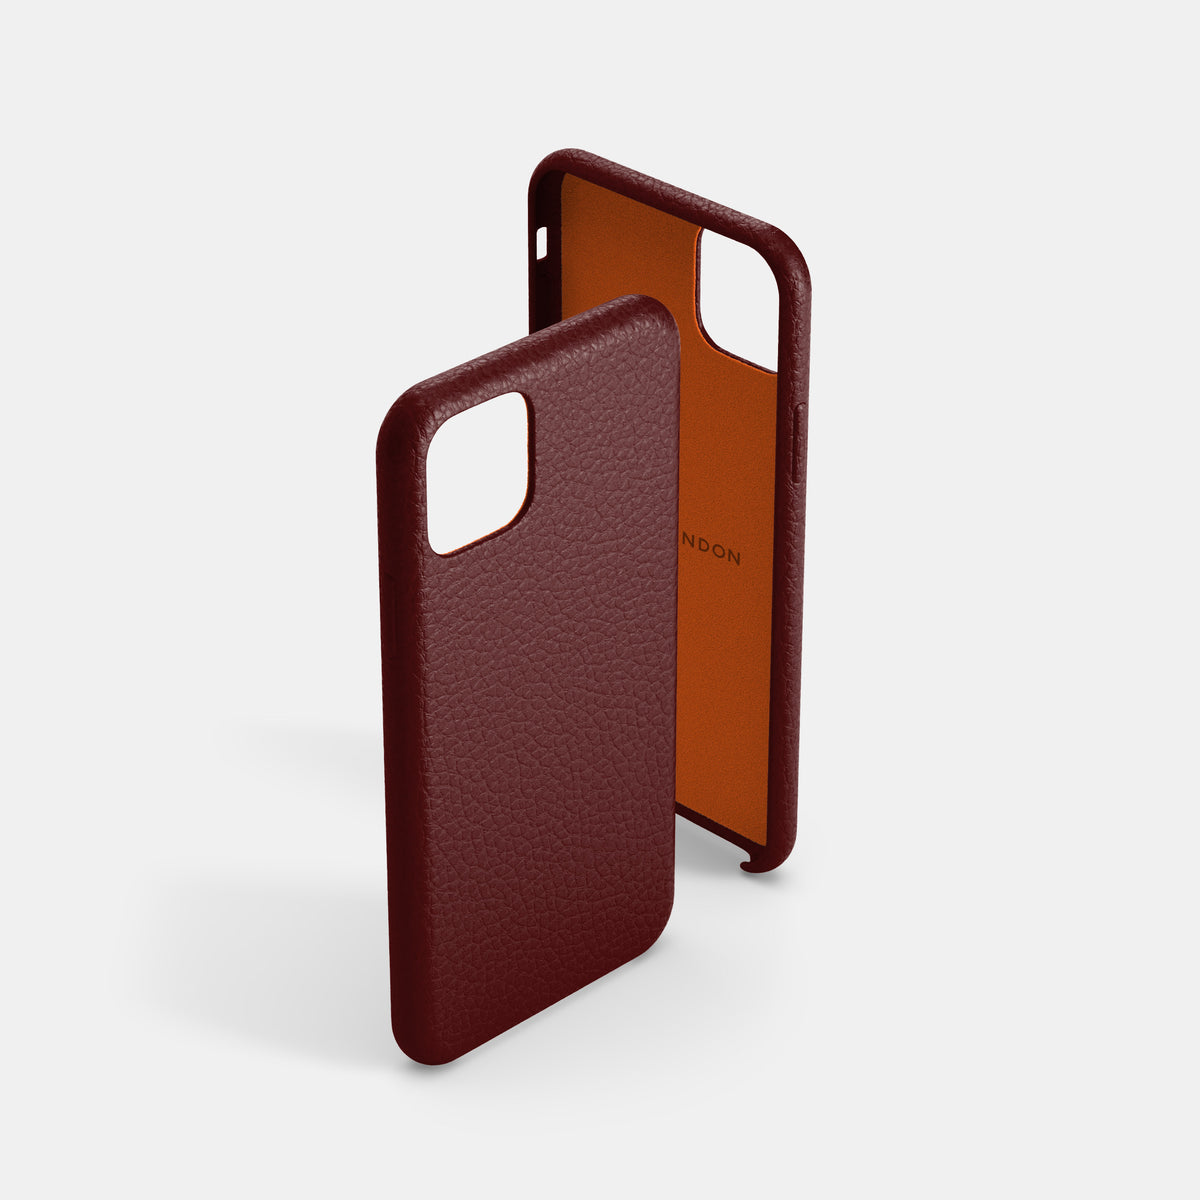 iPhone Leather Shell Case - Oxblood - RYAN London